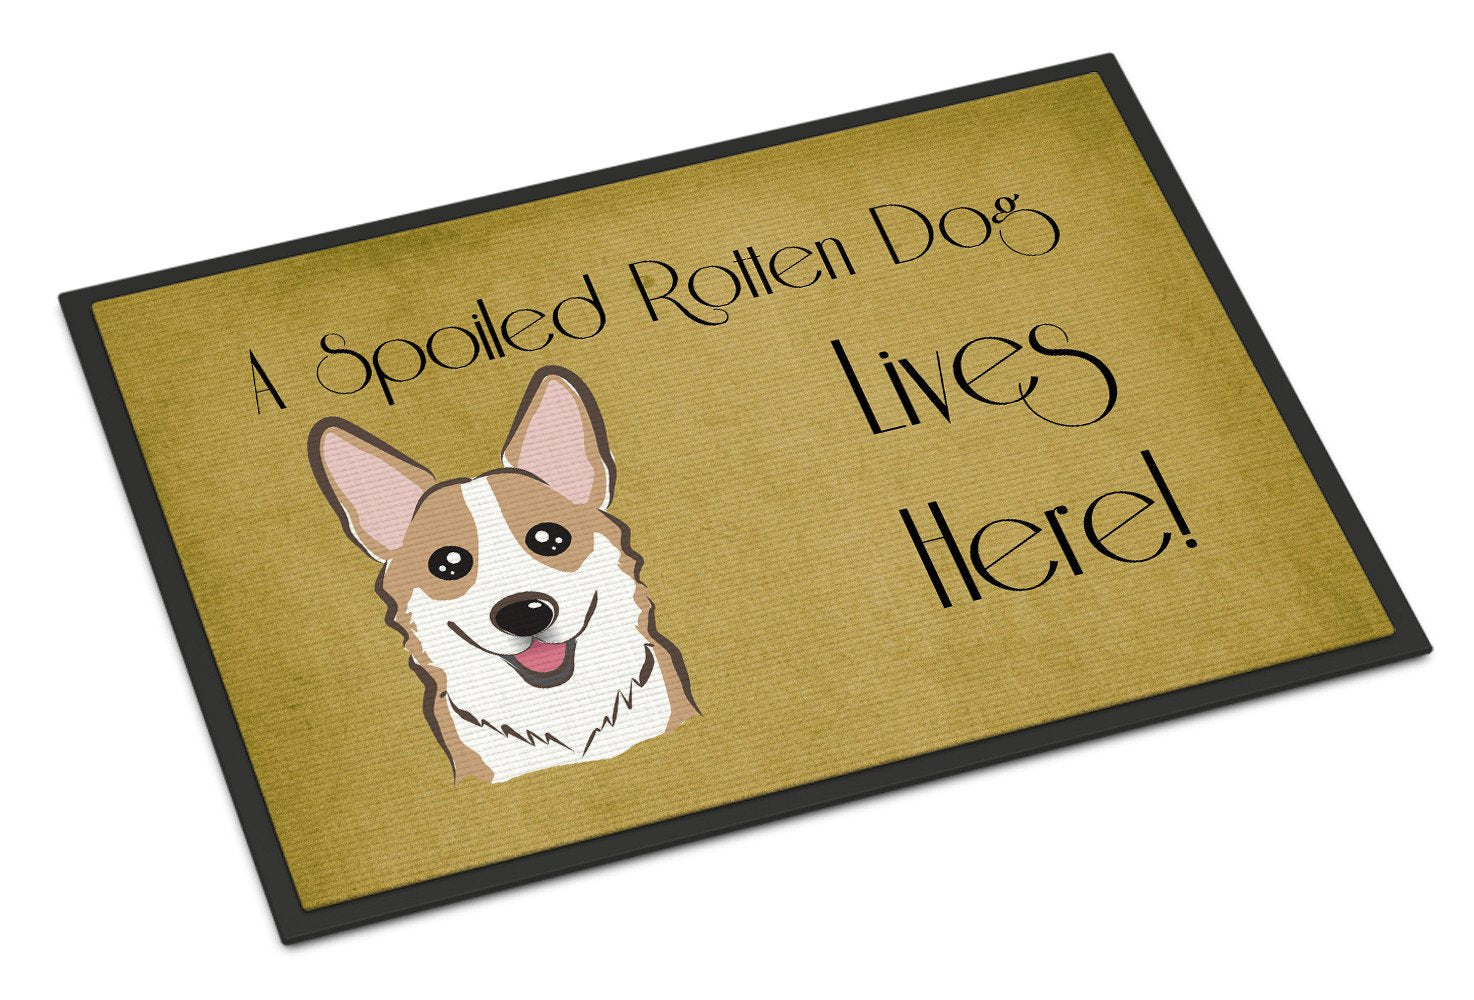 Sable Corgi Spoiled Dog Lives Here Indoor or Outdoor Mat 18x27 BB1501MAT - the-store.com